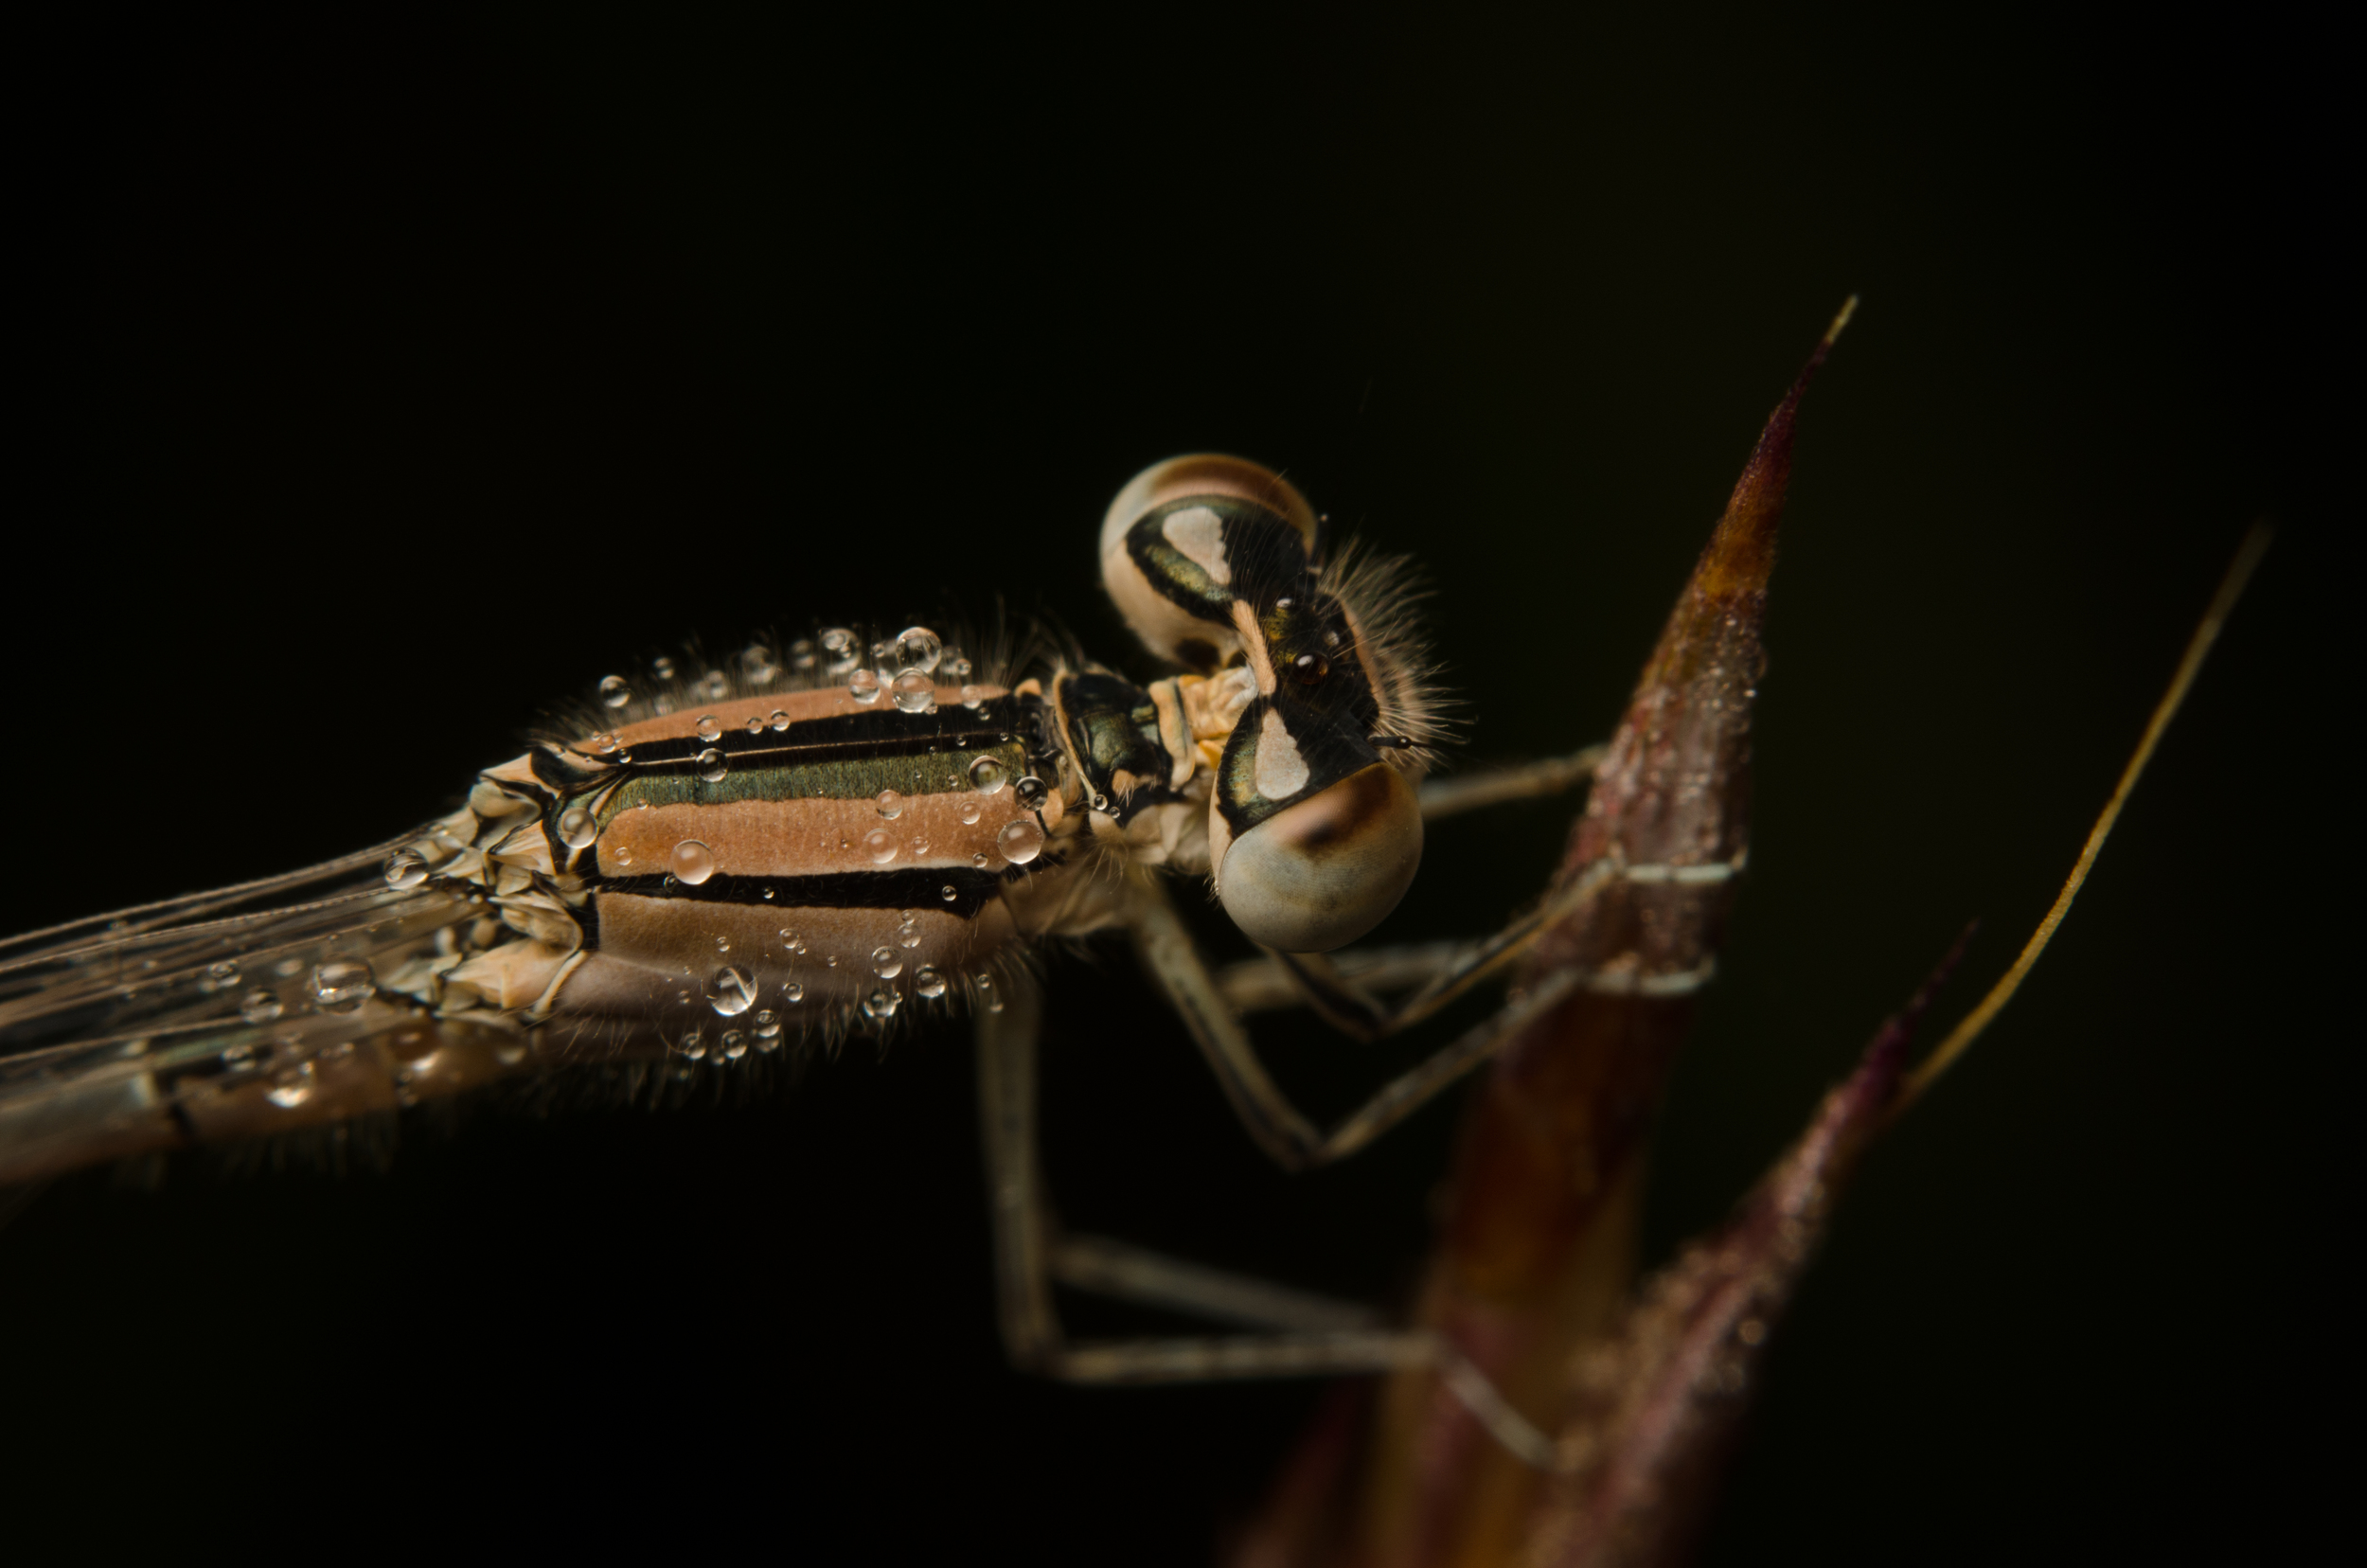 Damselfly  Nikon D7000 ISO 200 f/11 1/200 sec. sec. Nikkor 50mm f/1.4 reversed with BR-2 Reversing Ring plus PK-3 27mm extension tubes, off-camera flash with modified soft box. Single image